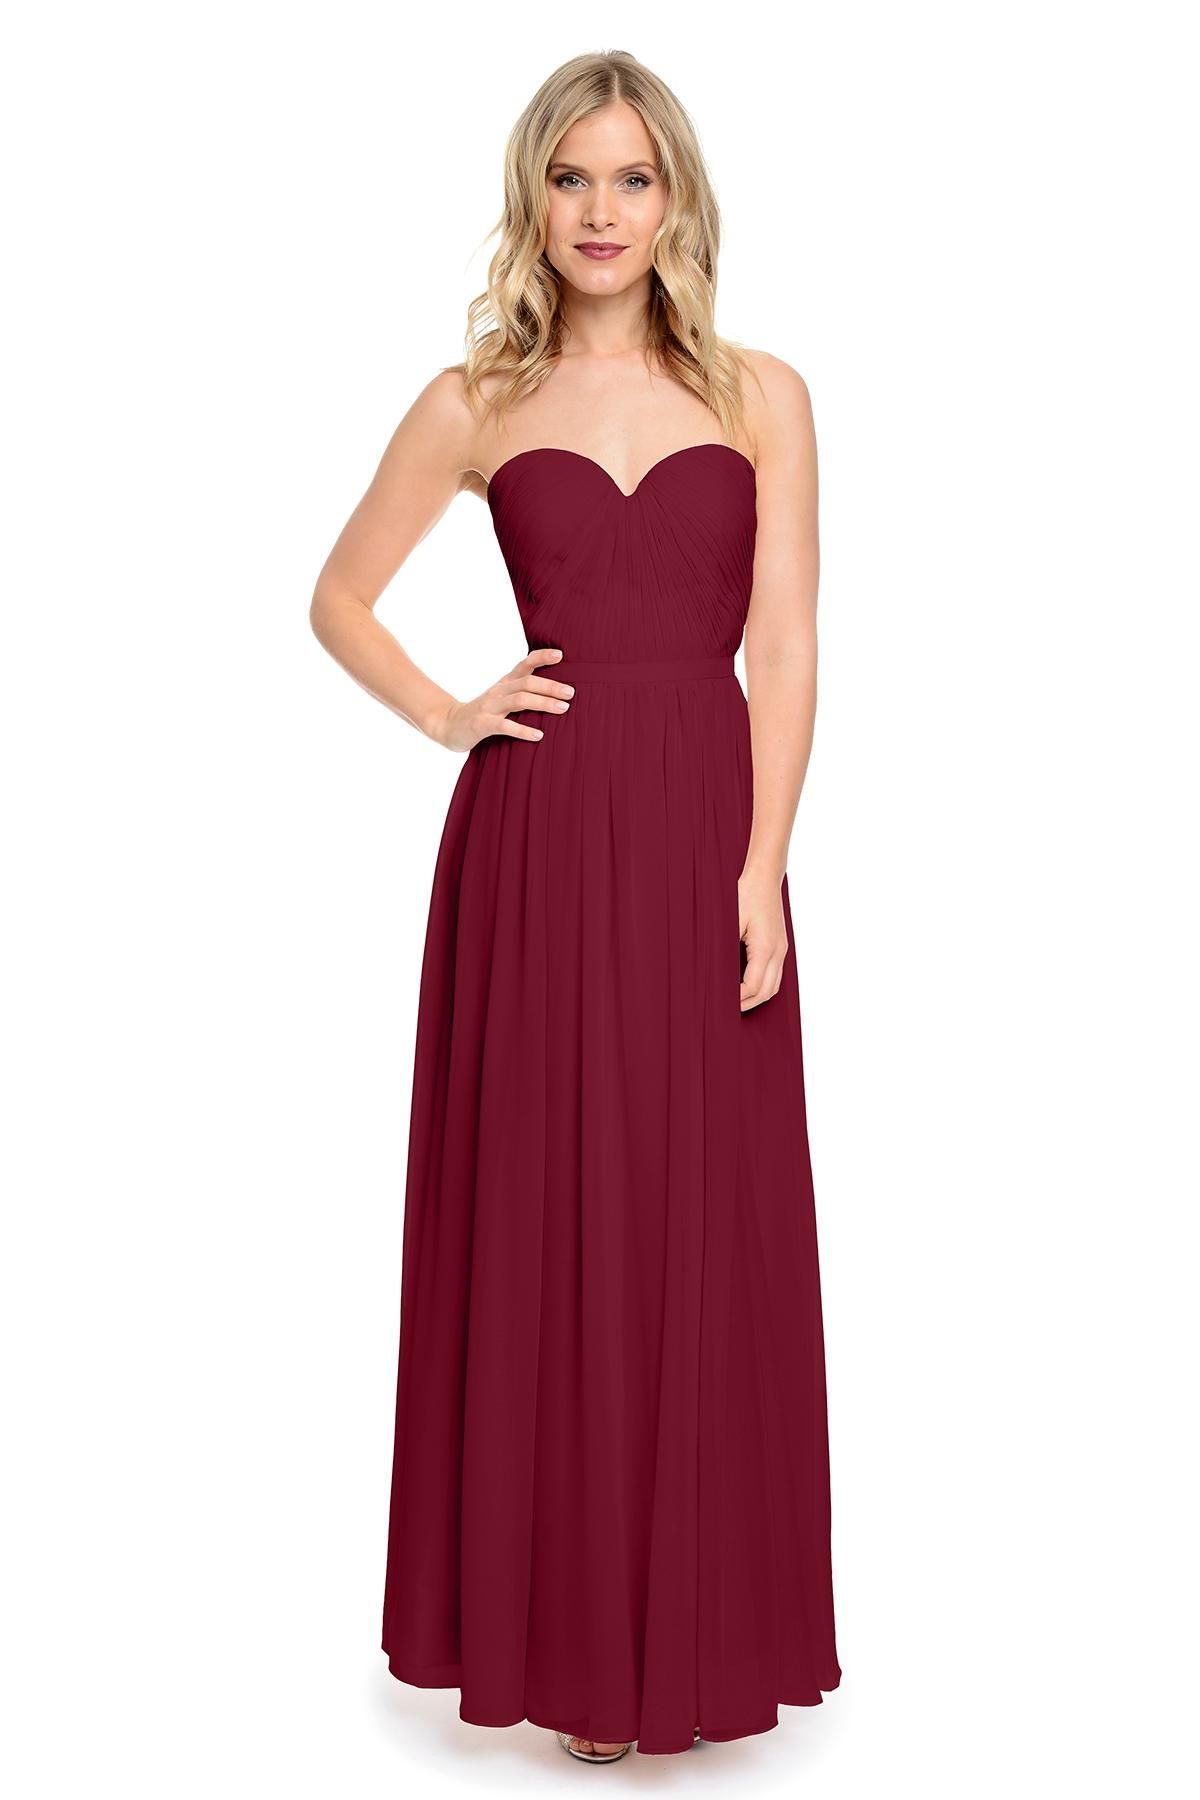 Cheap 2016 wineblueburgundy bridesmaid dresses long pleated 2016 wineblueburgundy bridesmaid dresses uk long wedding guest dresses burgundy prom dresses ombrellifo Images